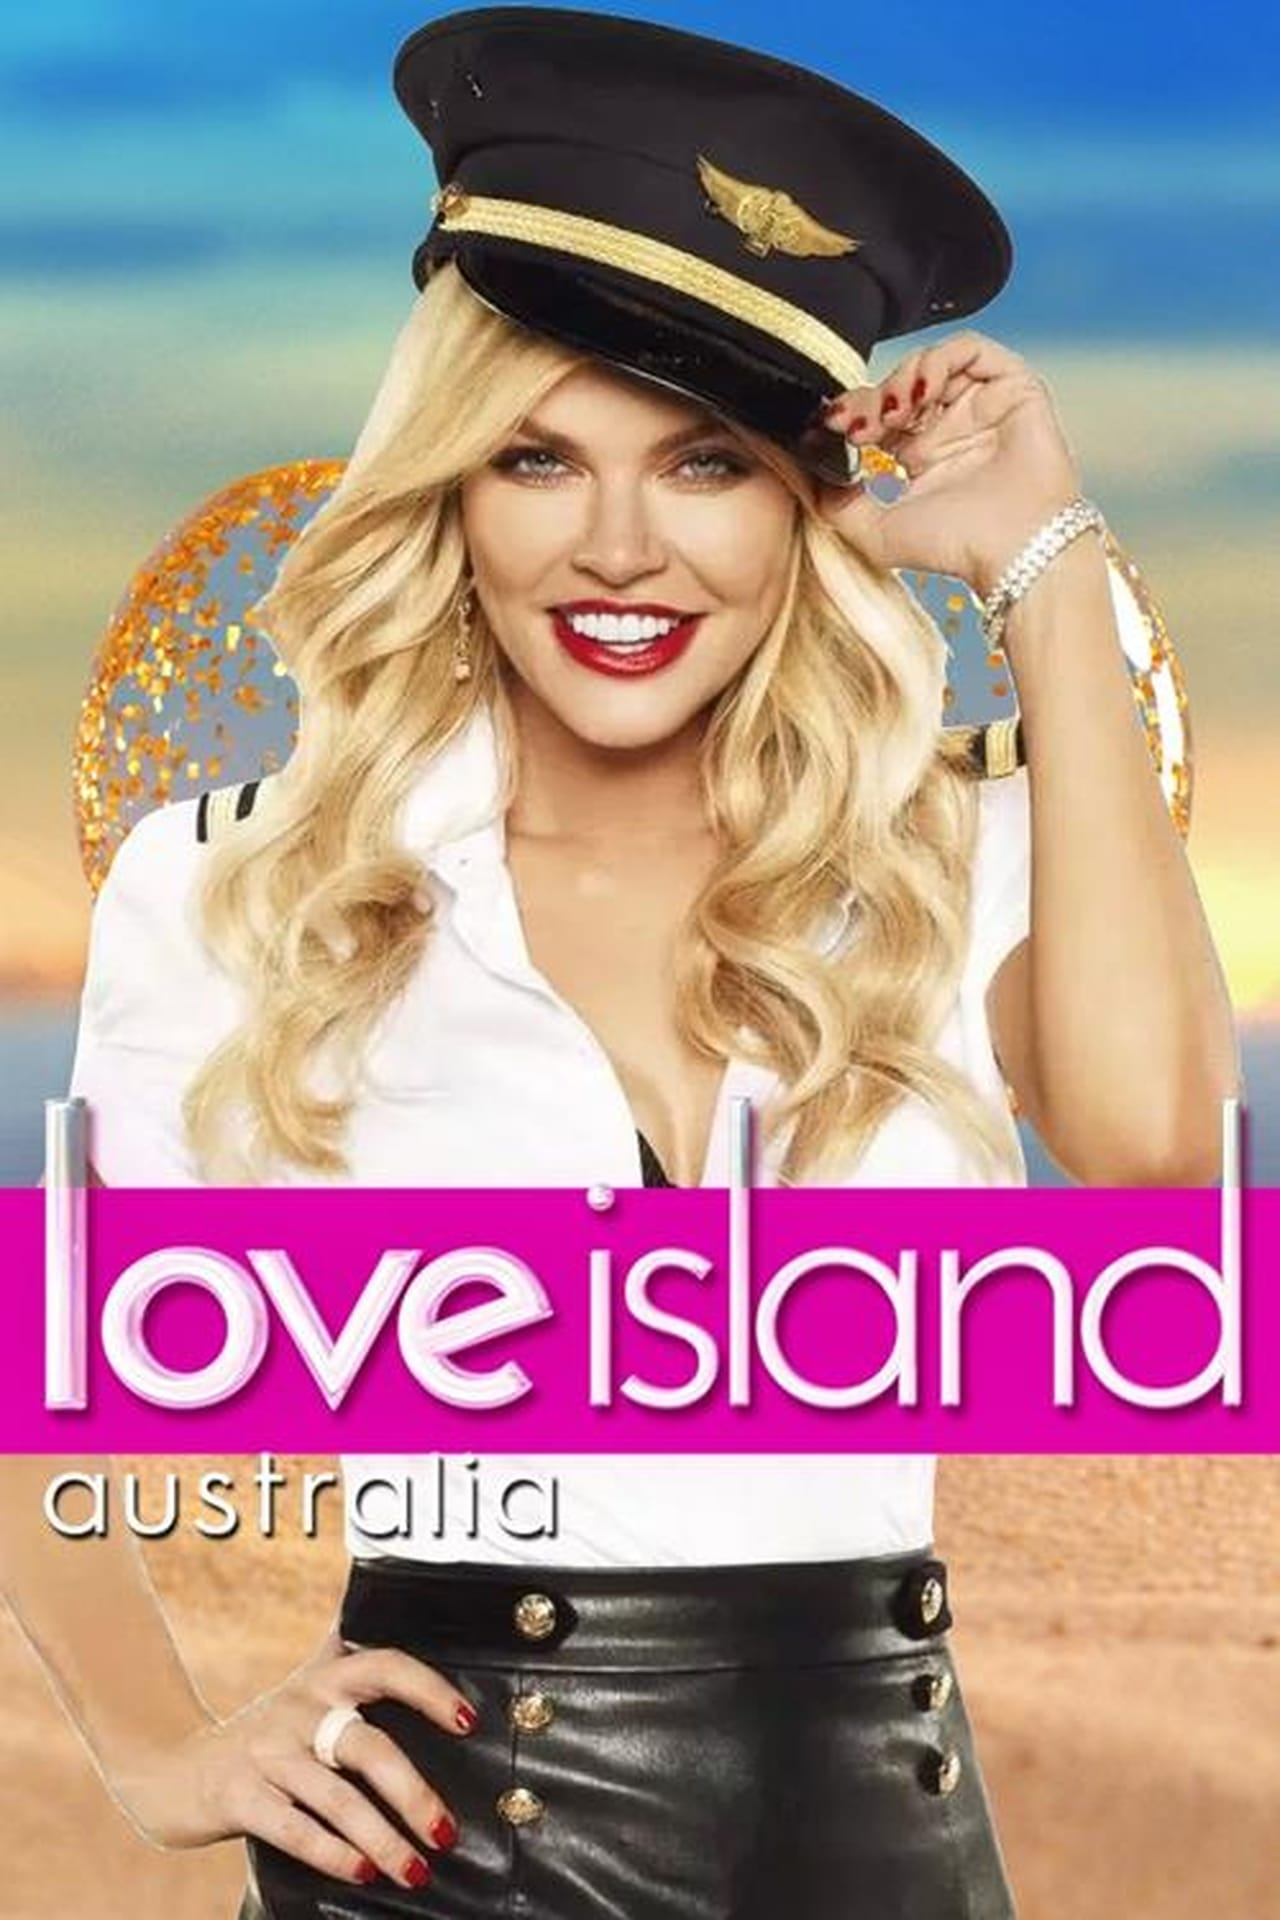 Watch Love Island Australia Season 1 Online